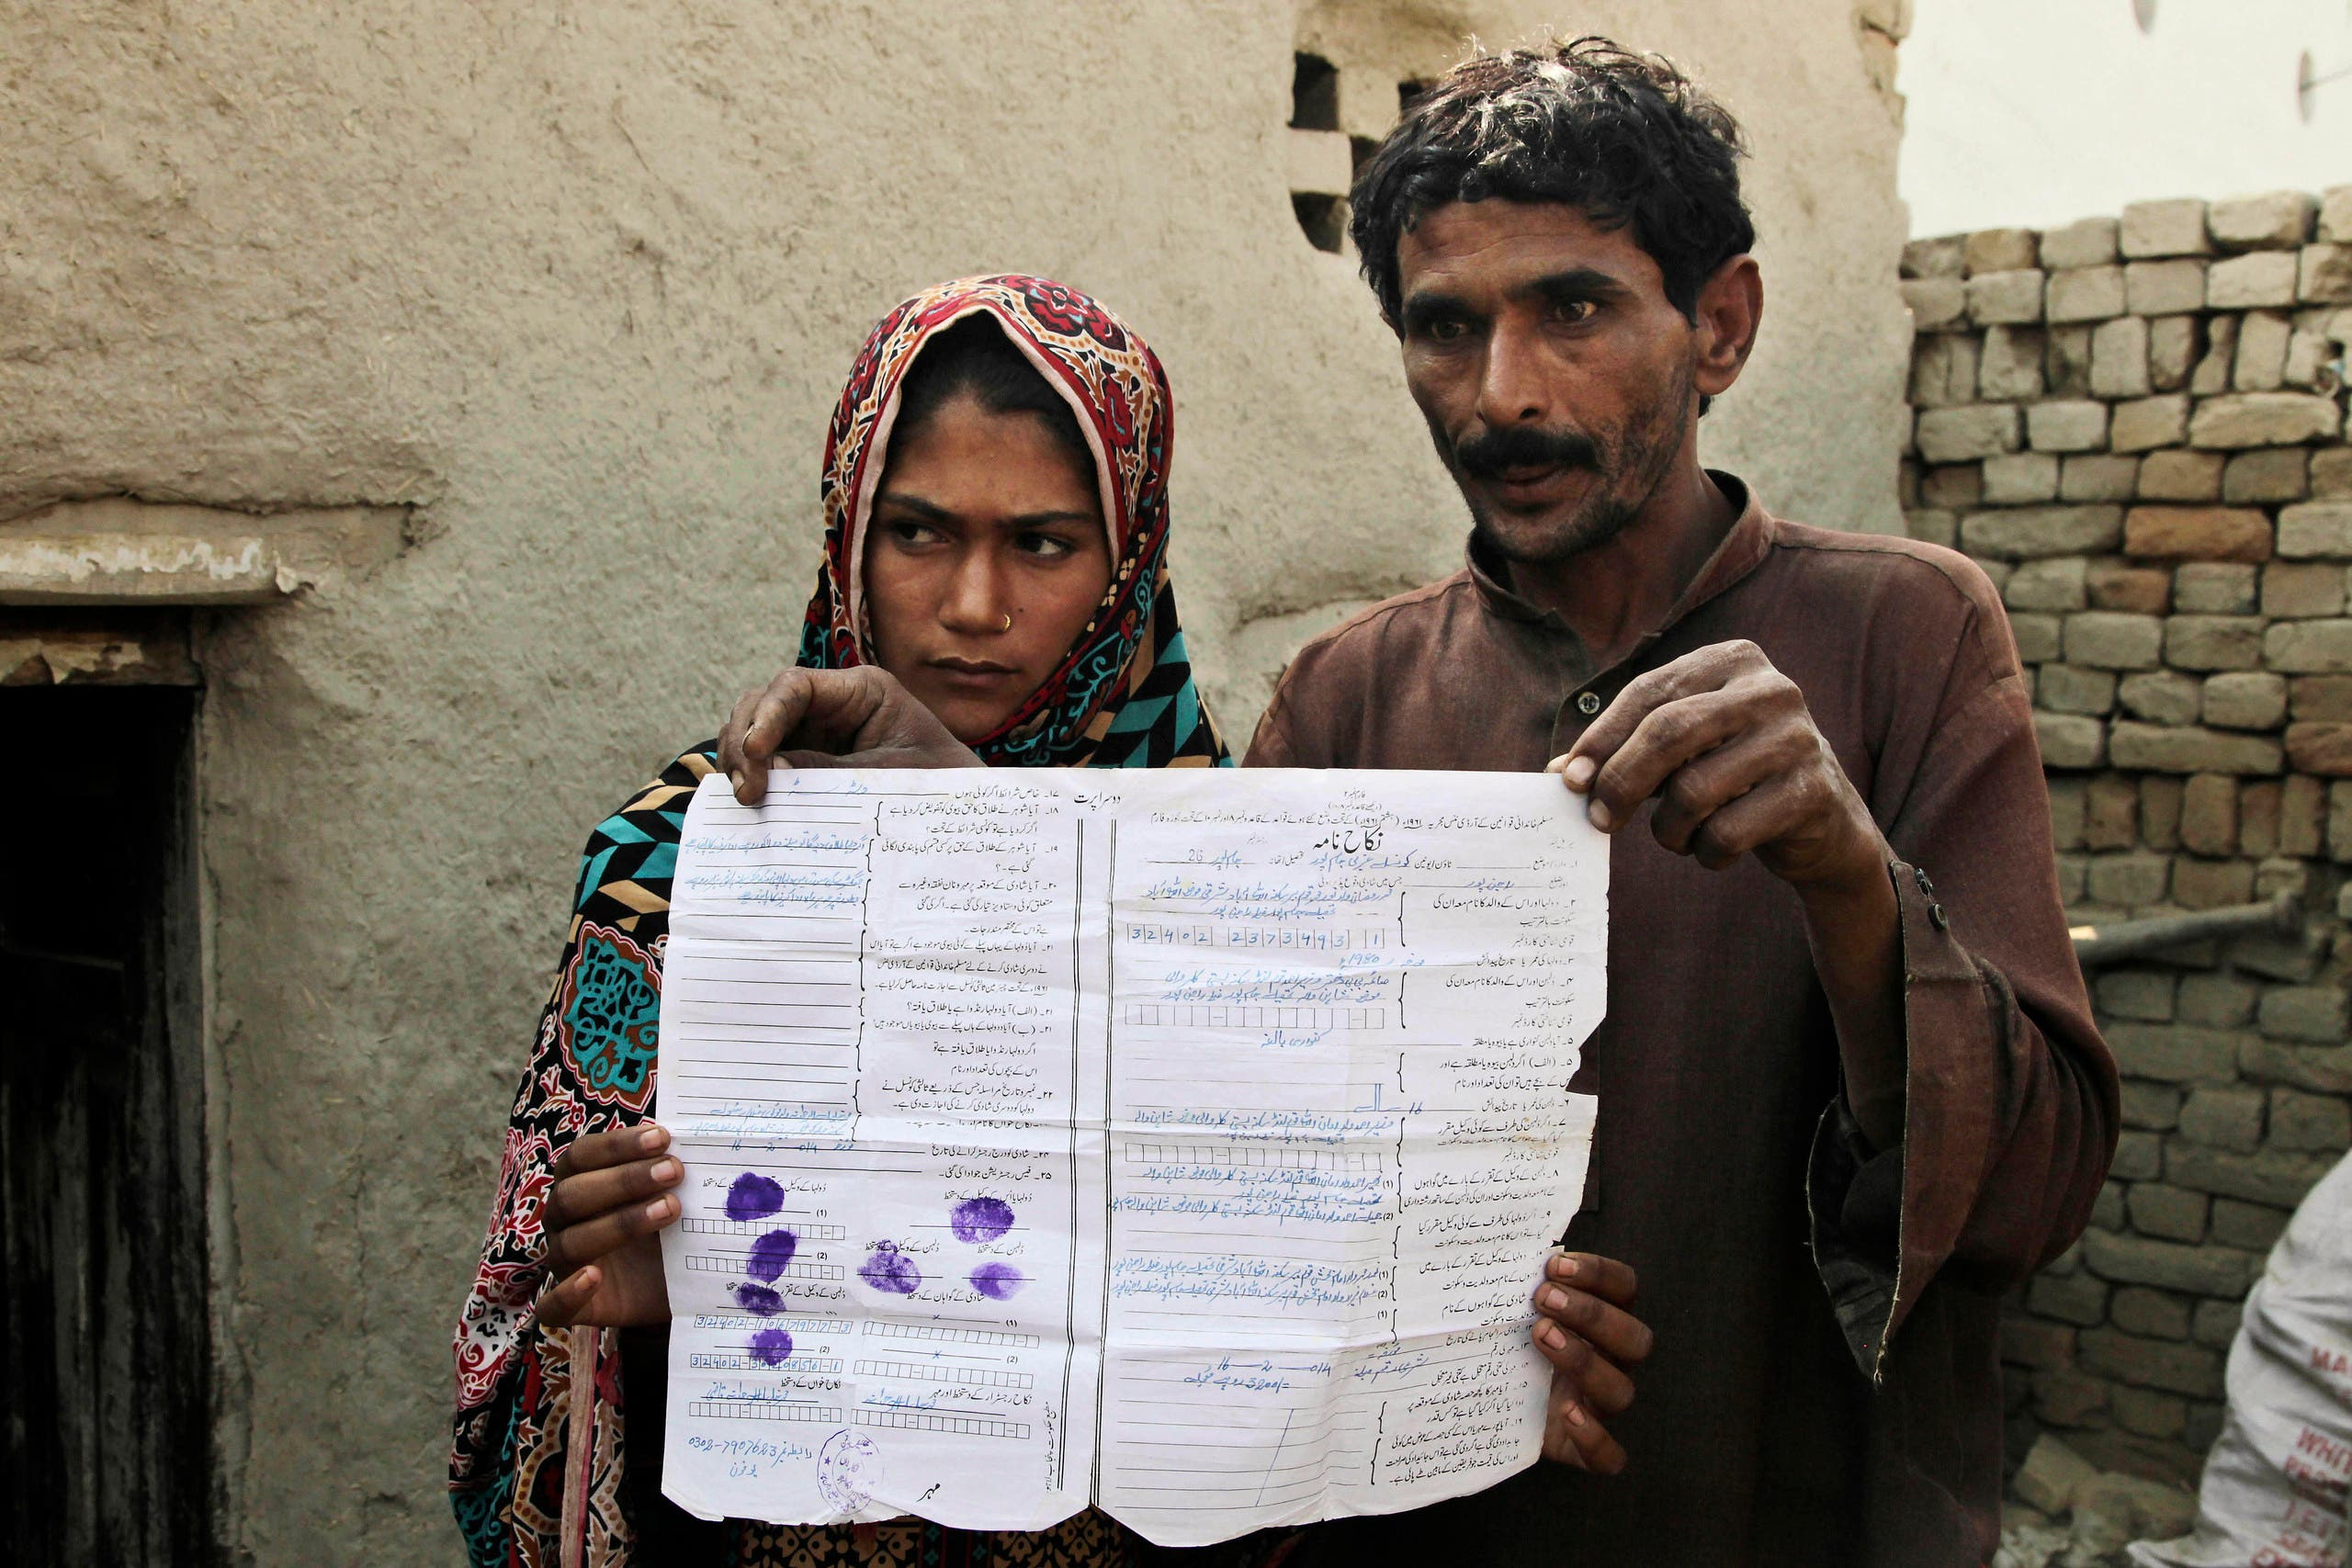 Mohammad Ramzan shows his marriage contract with his young bride Saima in Jampur, Pakistan. (AP)